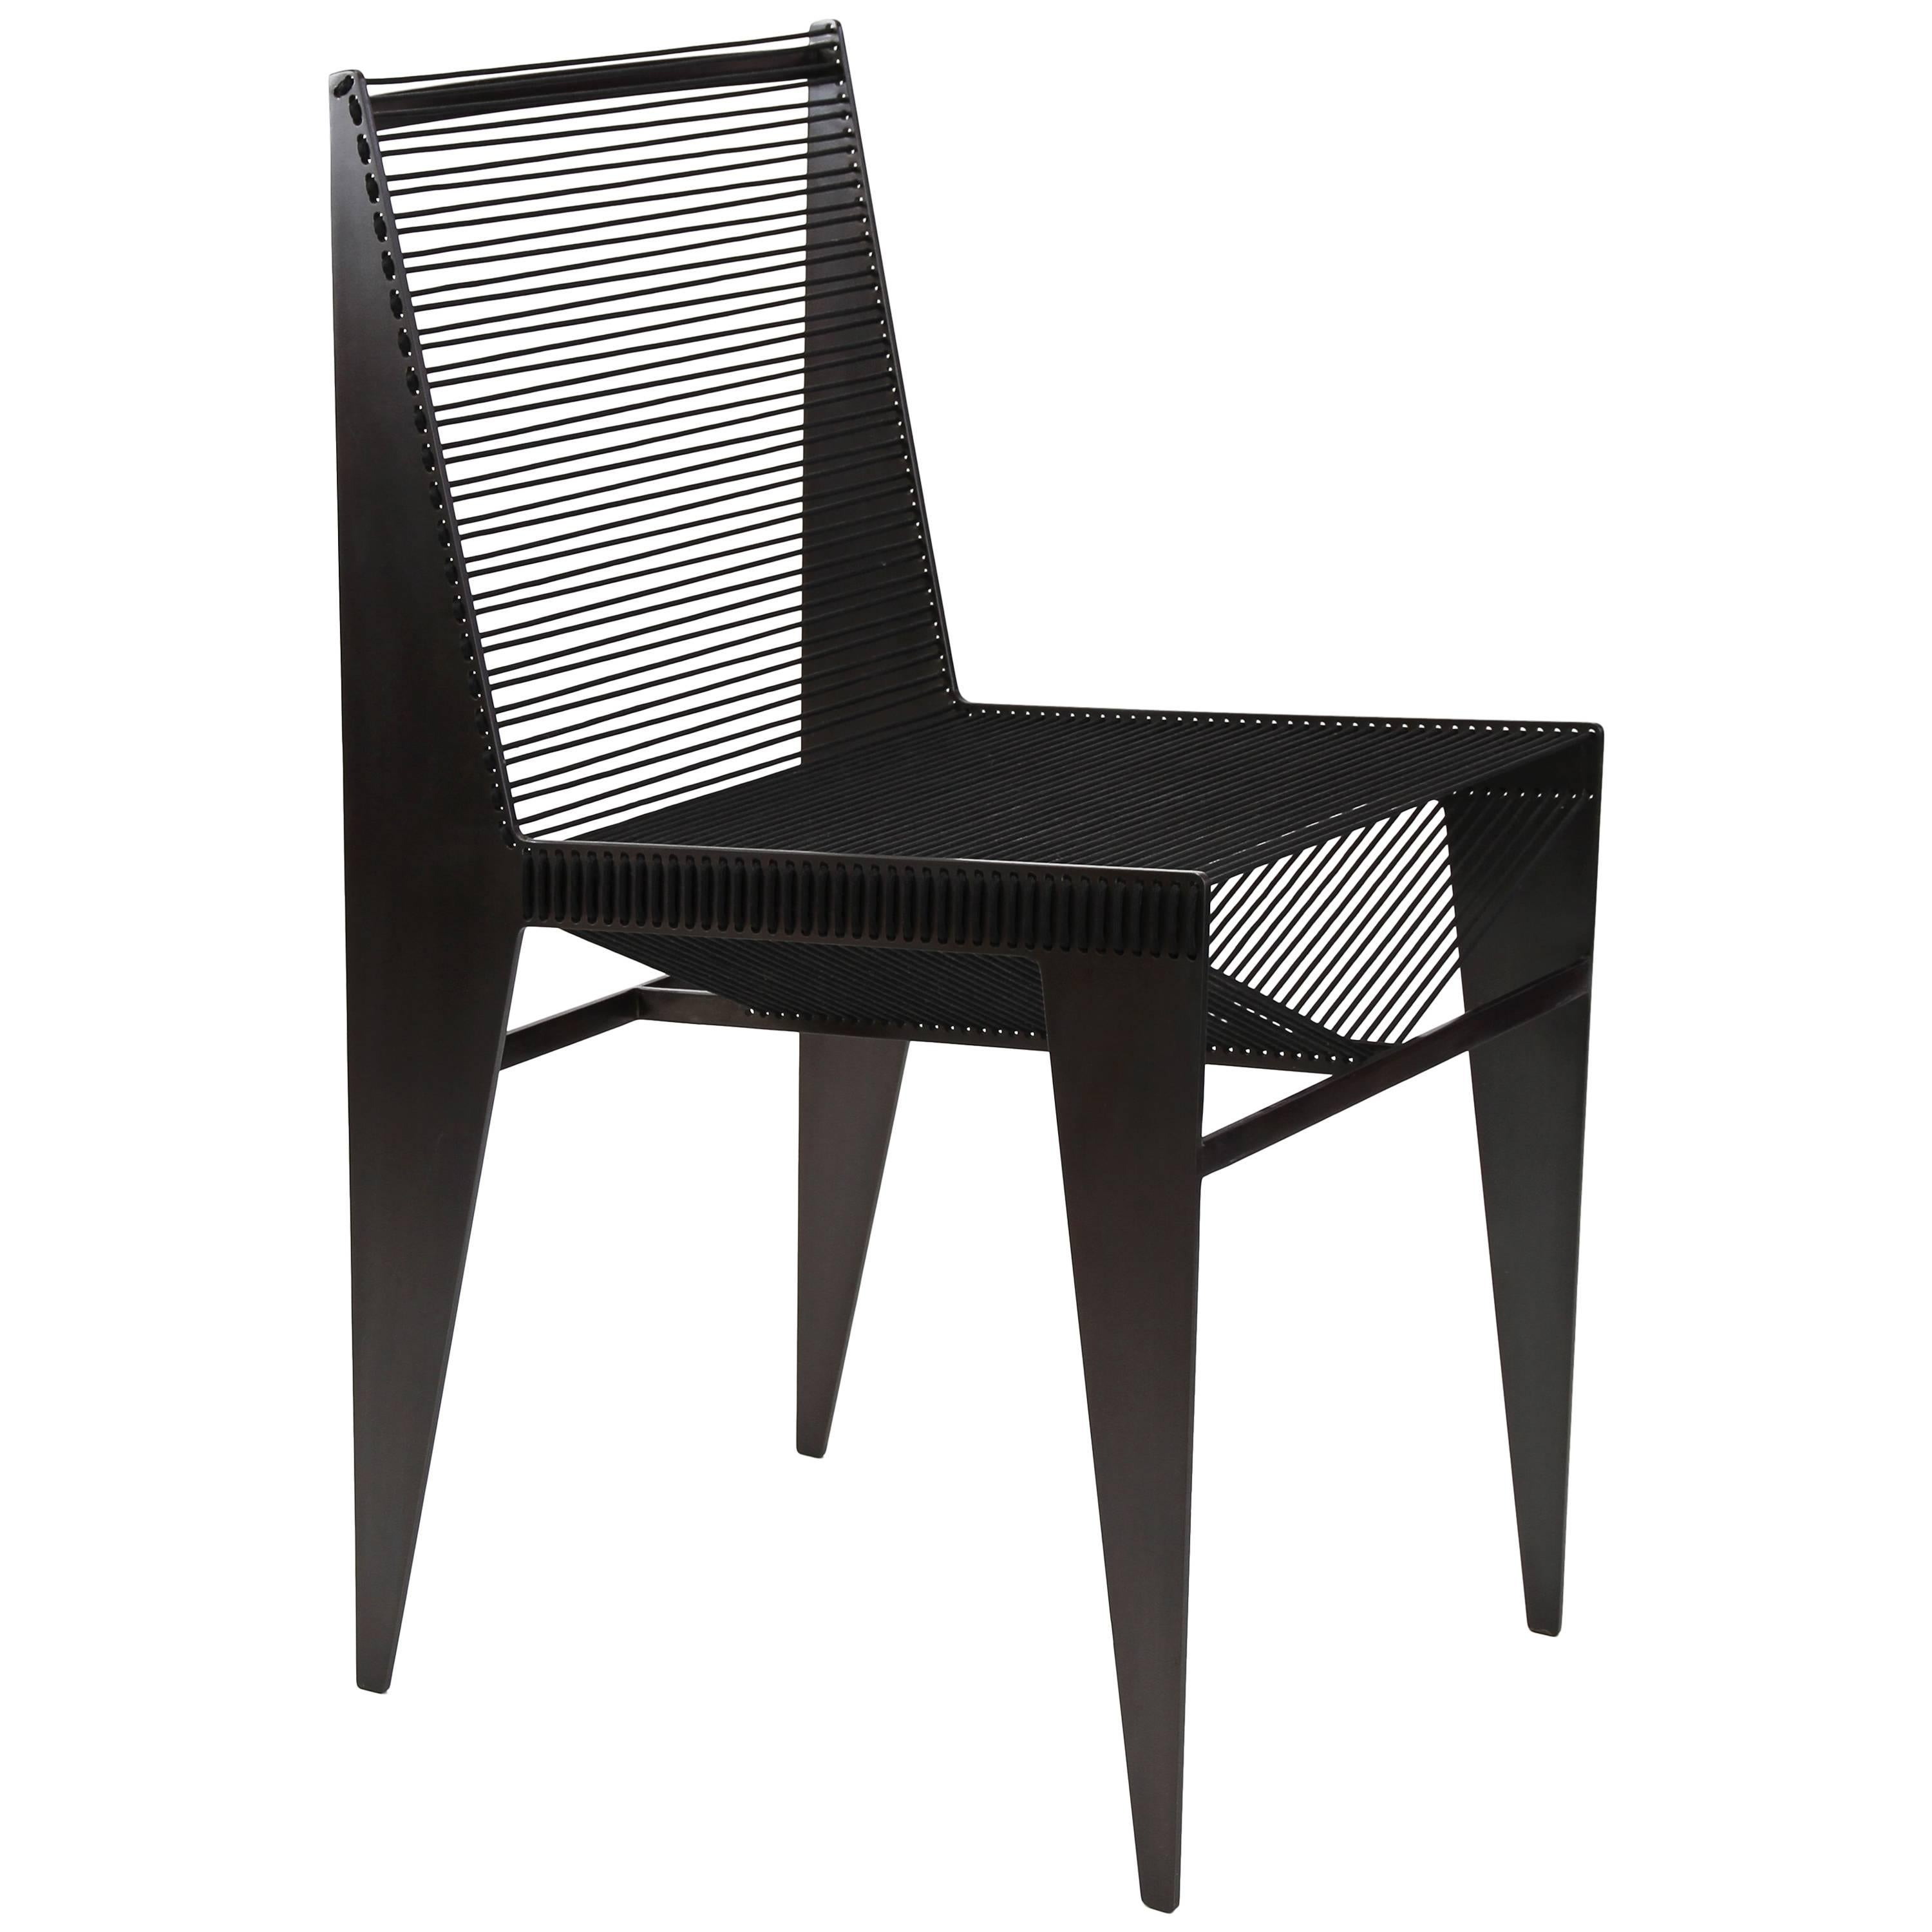 ICON Chair in powder coated solid steel and rope by Christopher Kreiling Studio